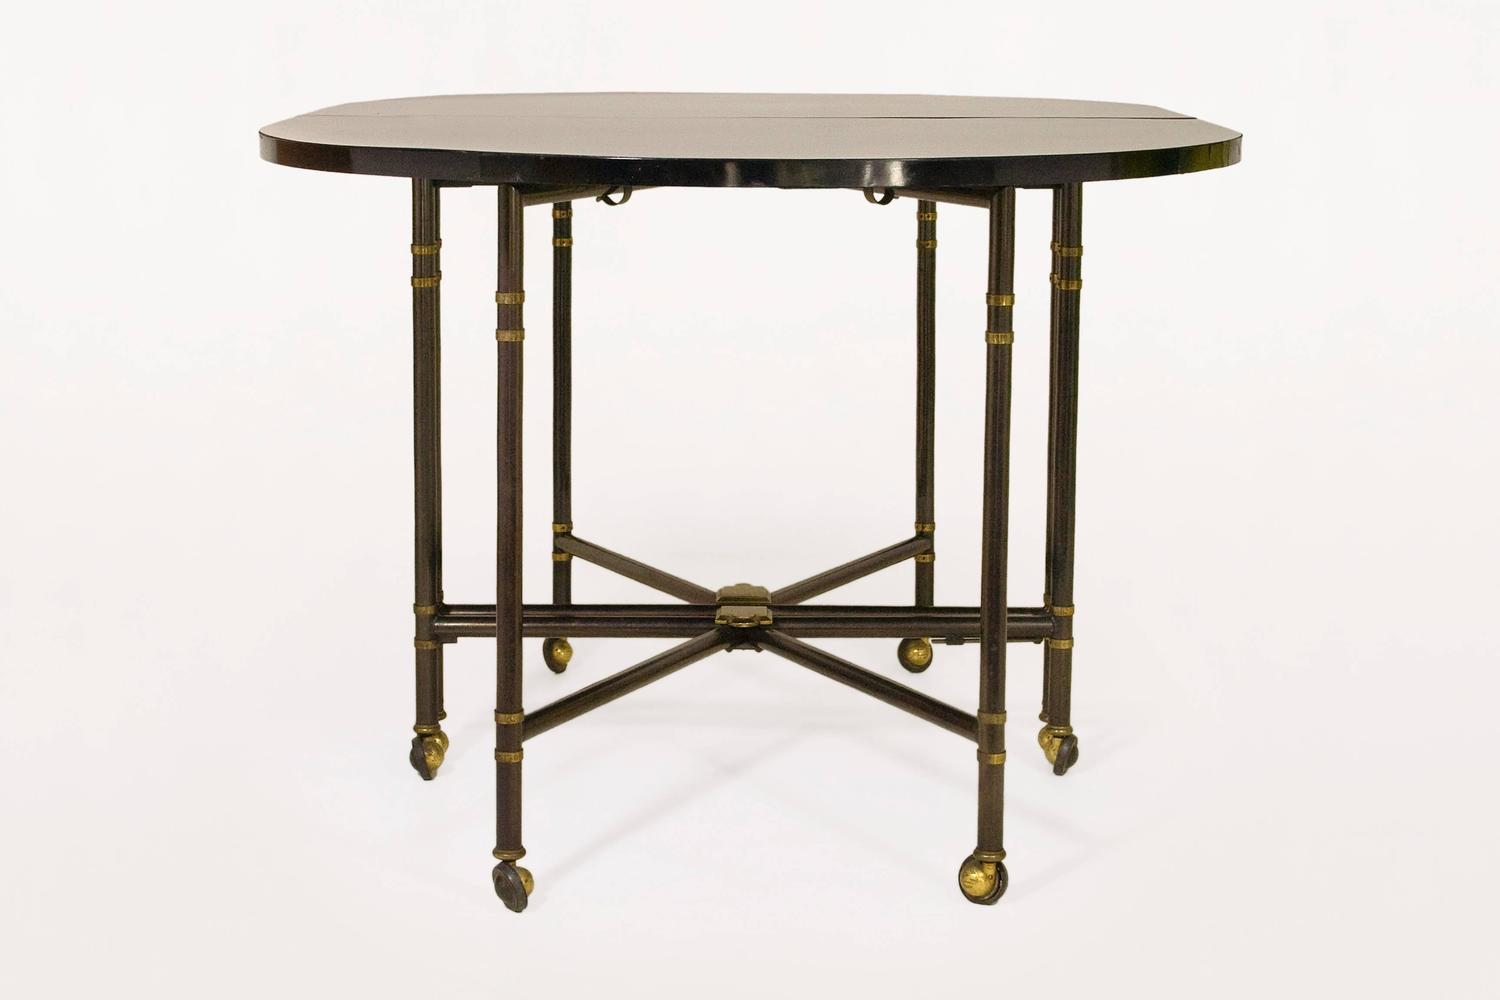 Maison jansen table royal dining room table circa 1970 for Royal dining table